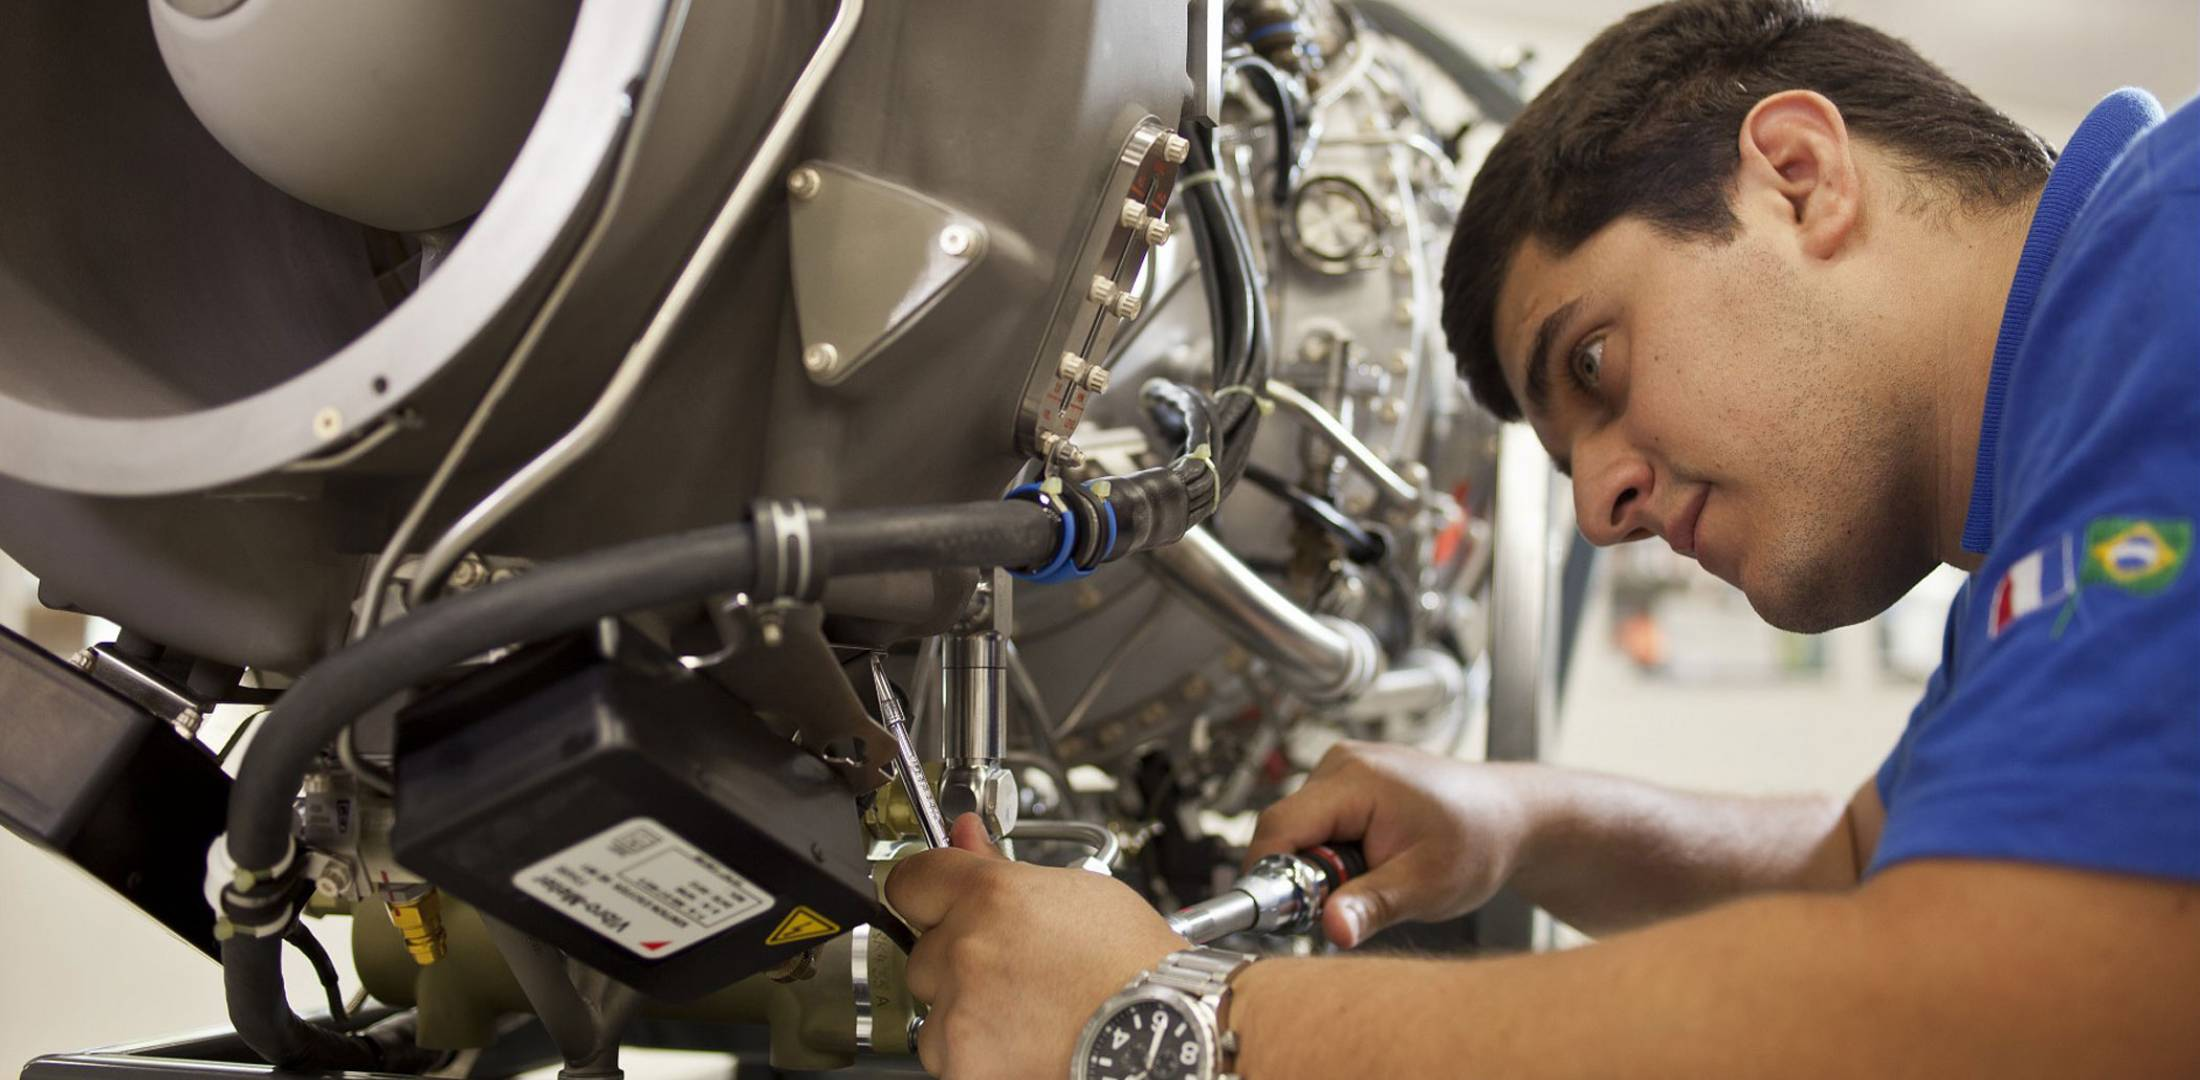 Safran says there are approximately 1,500 of its Safran Helicopter Engines turboshafts currently in service throughout Latin America, with 800 flying in Brazil.